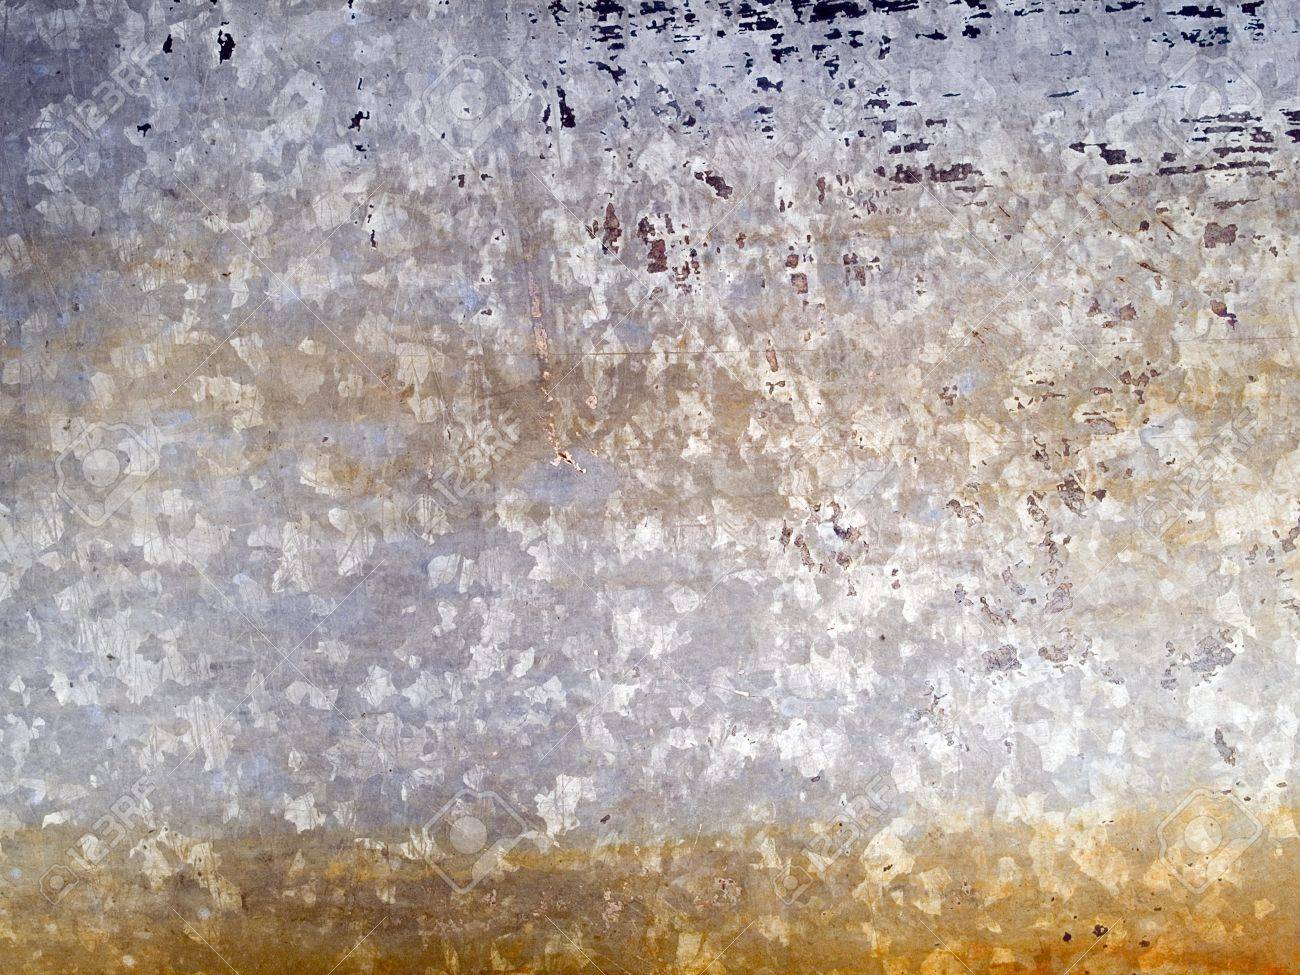 Stock macro photo of the texture of discolored metal.  Useful for layer masks and abstract backgrounds. Stock Photo - 8050992